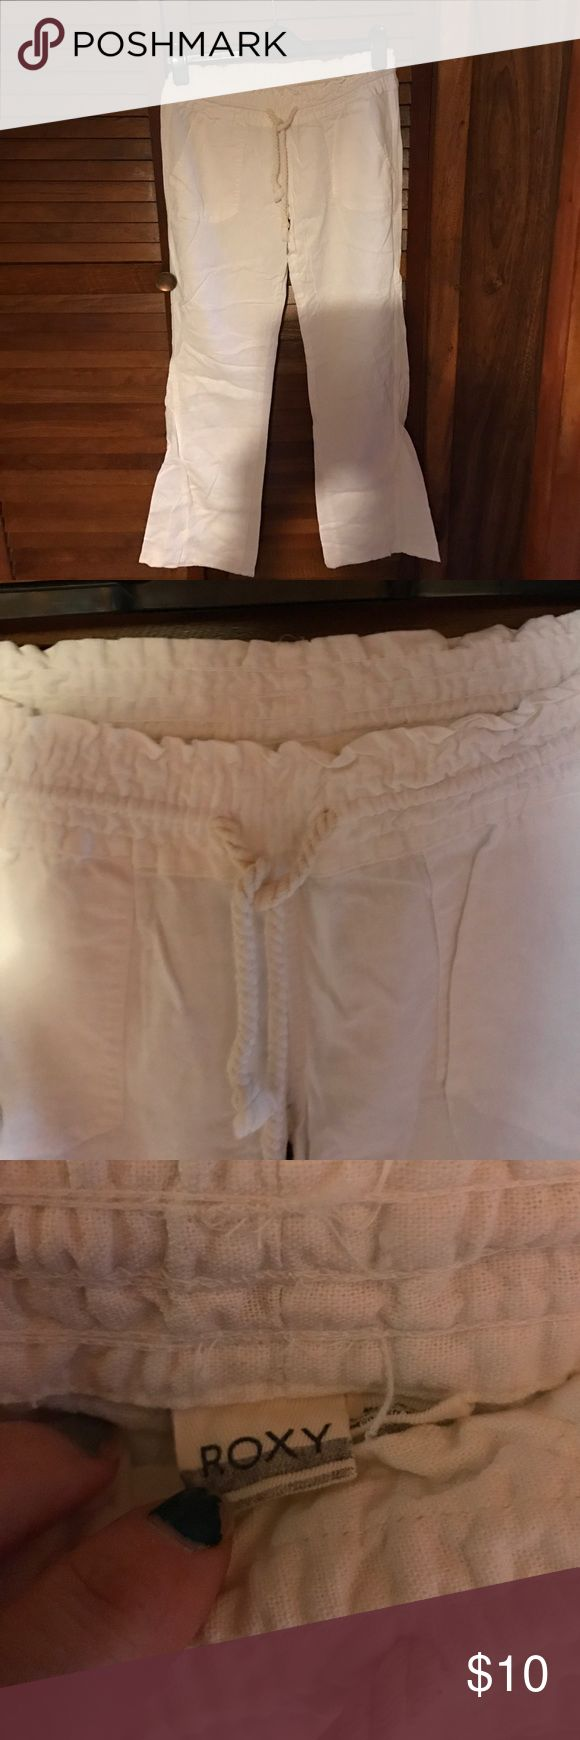 Roxy white beach pants Small Draw string and elastic waists white beachy pants. Roxy Pants Wide Leg